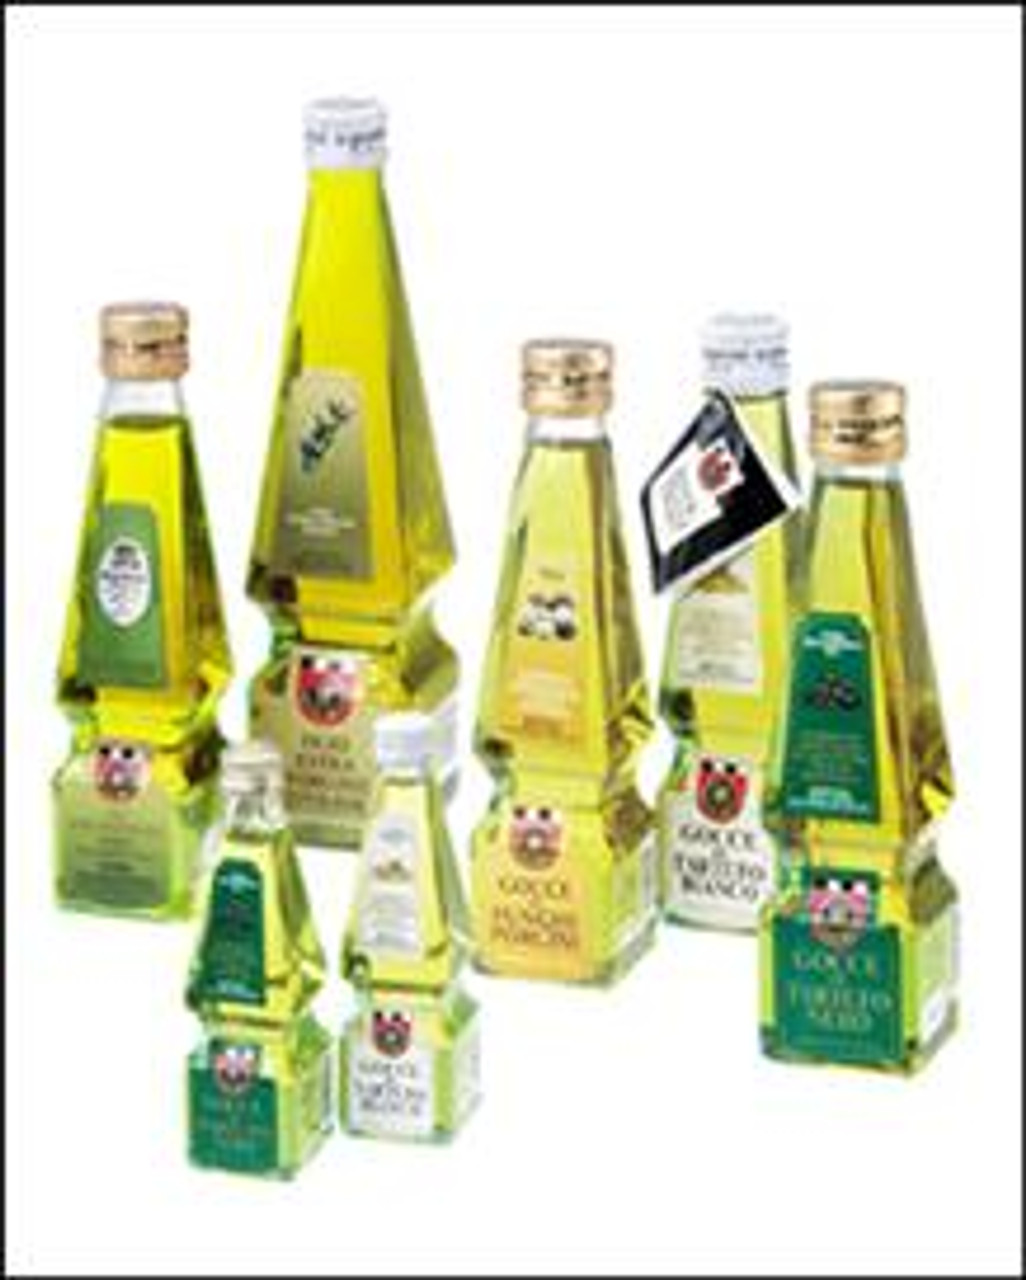 Urbani Extra Virgin Olive Oil with Black Truffle